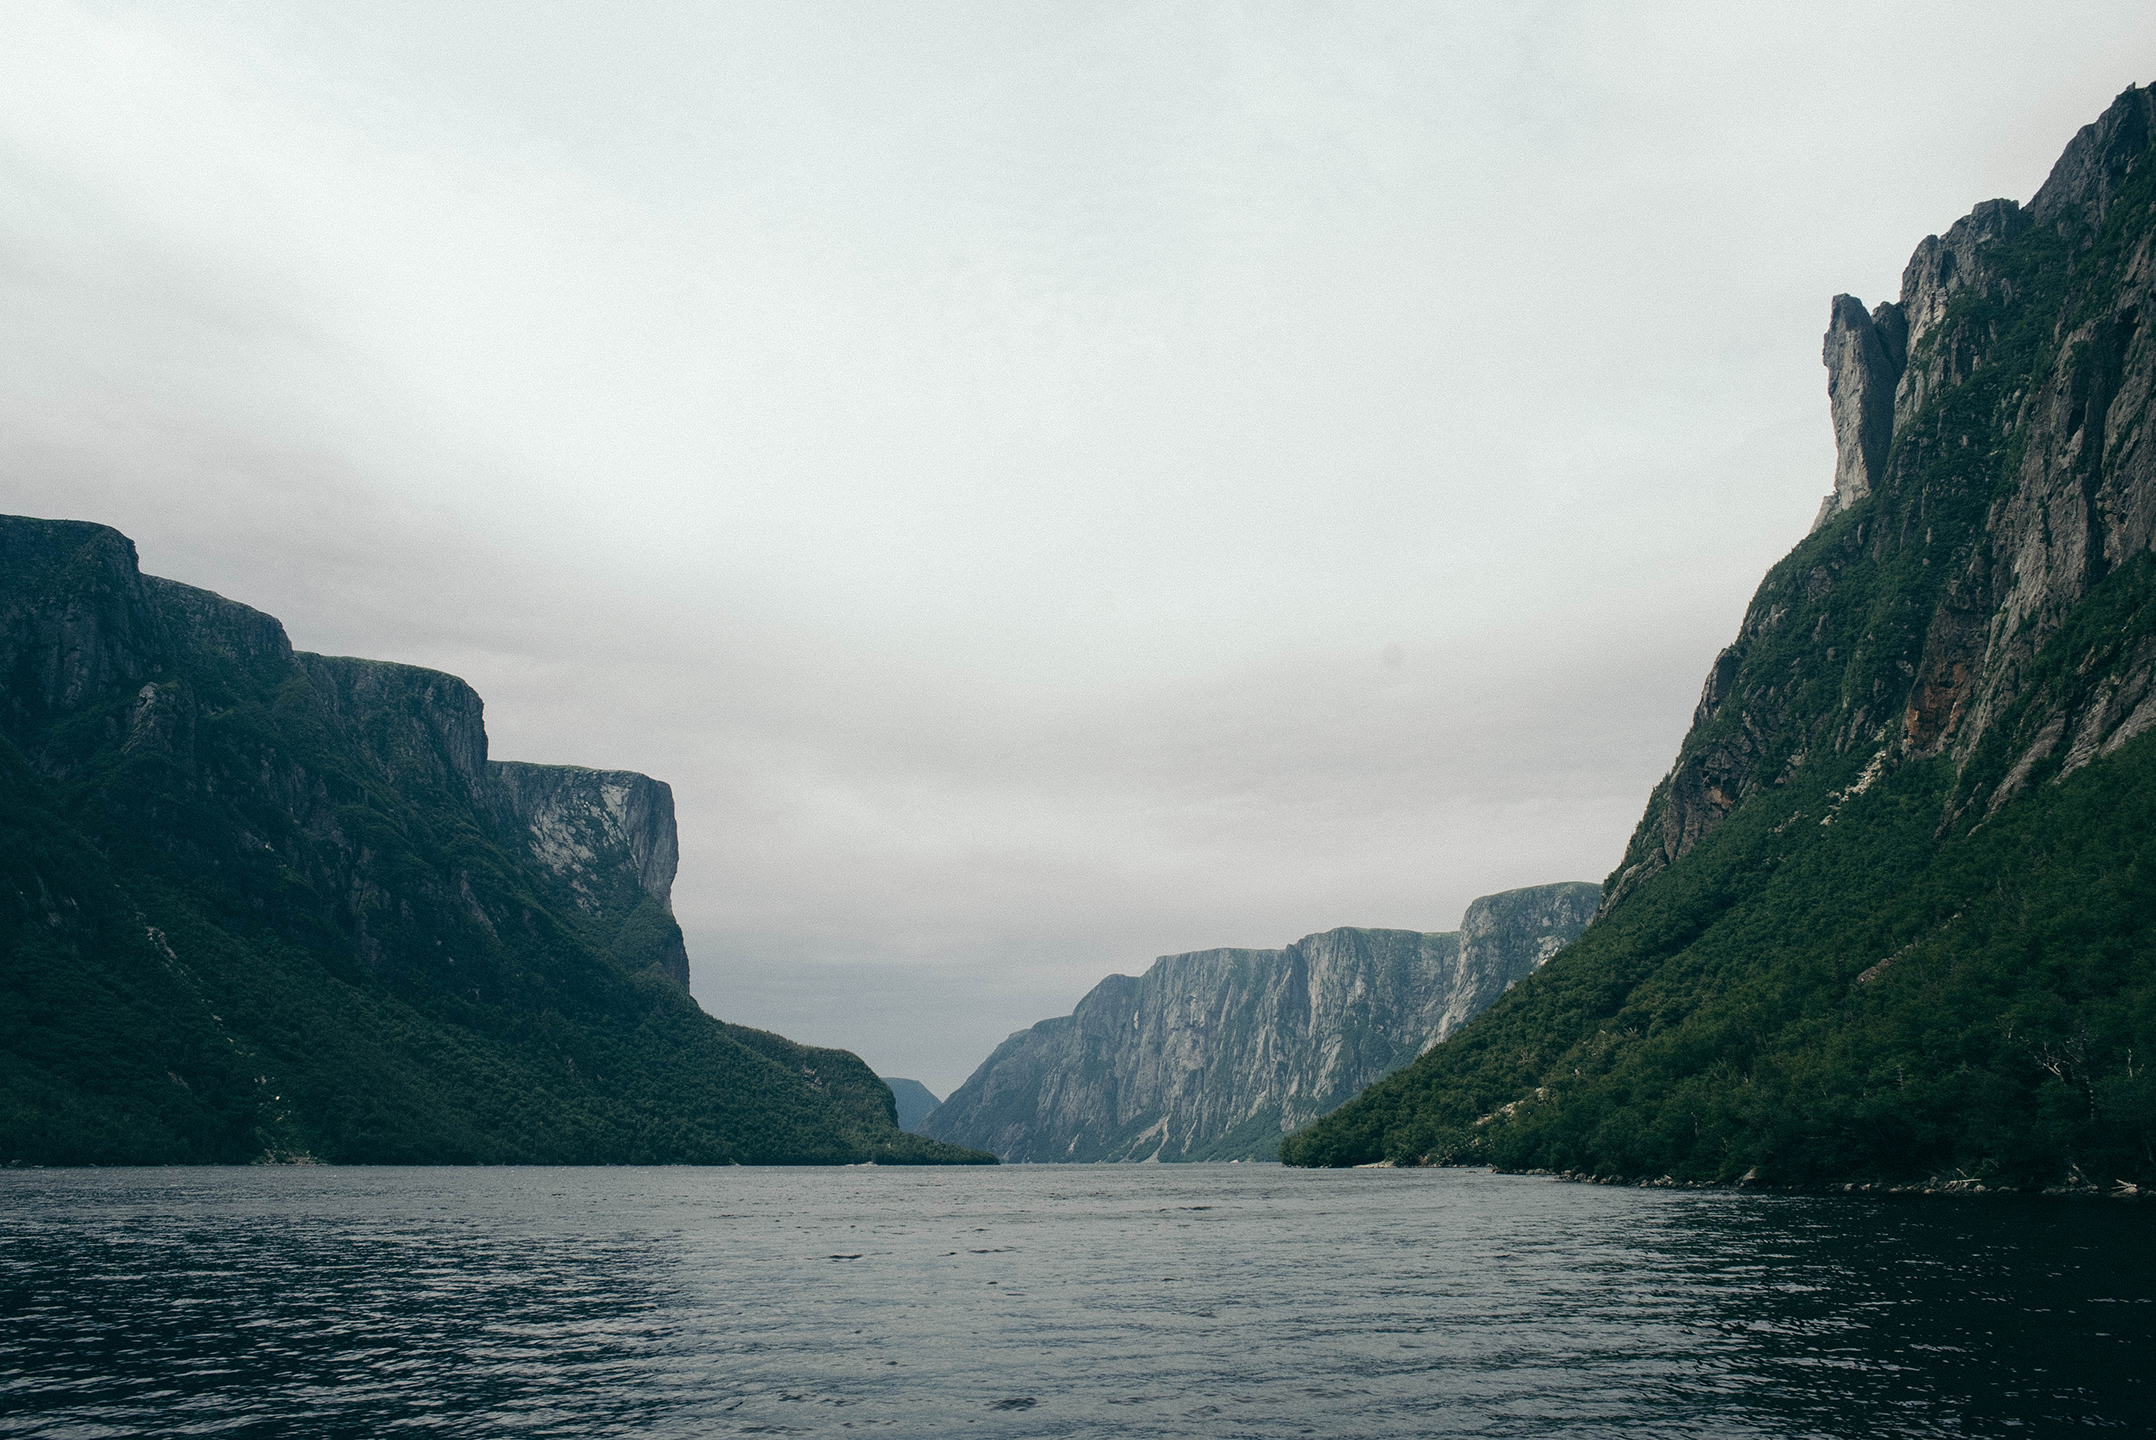 Western Brook Pond, NL